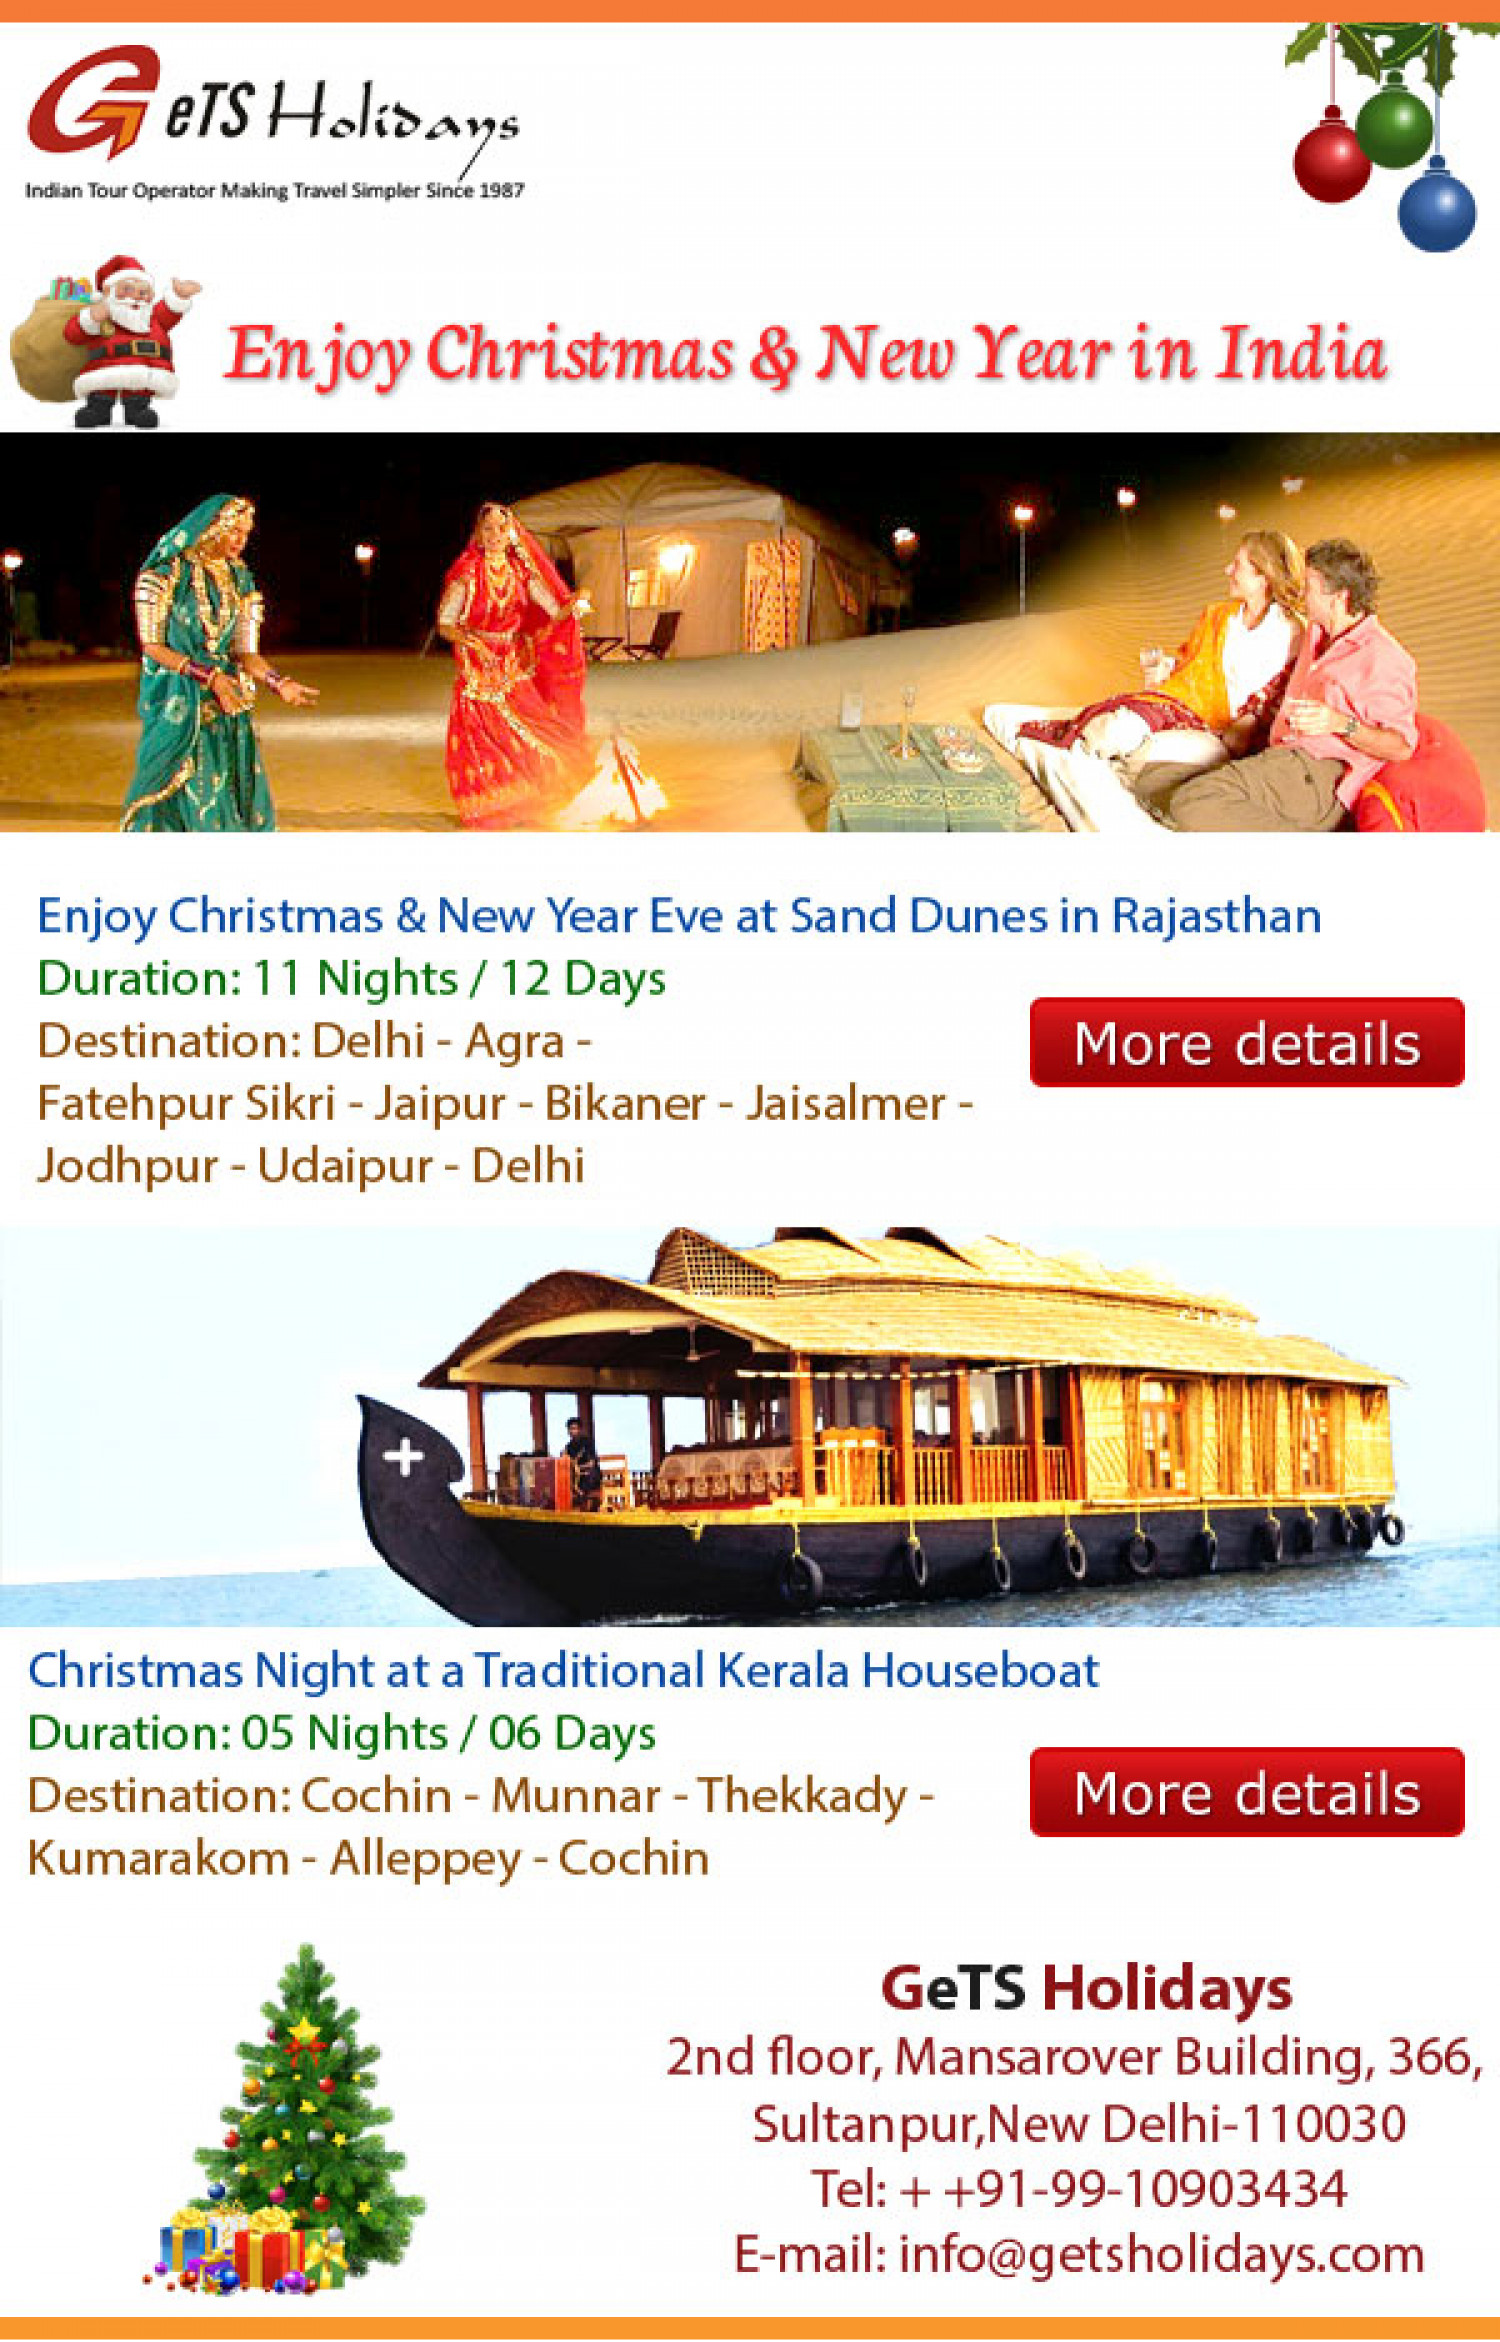 Christmas and New Year Celebration in India Infographic